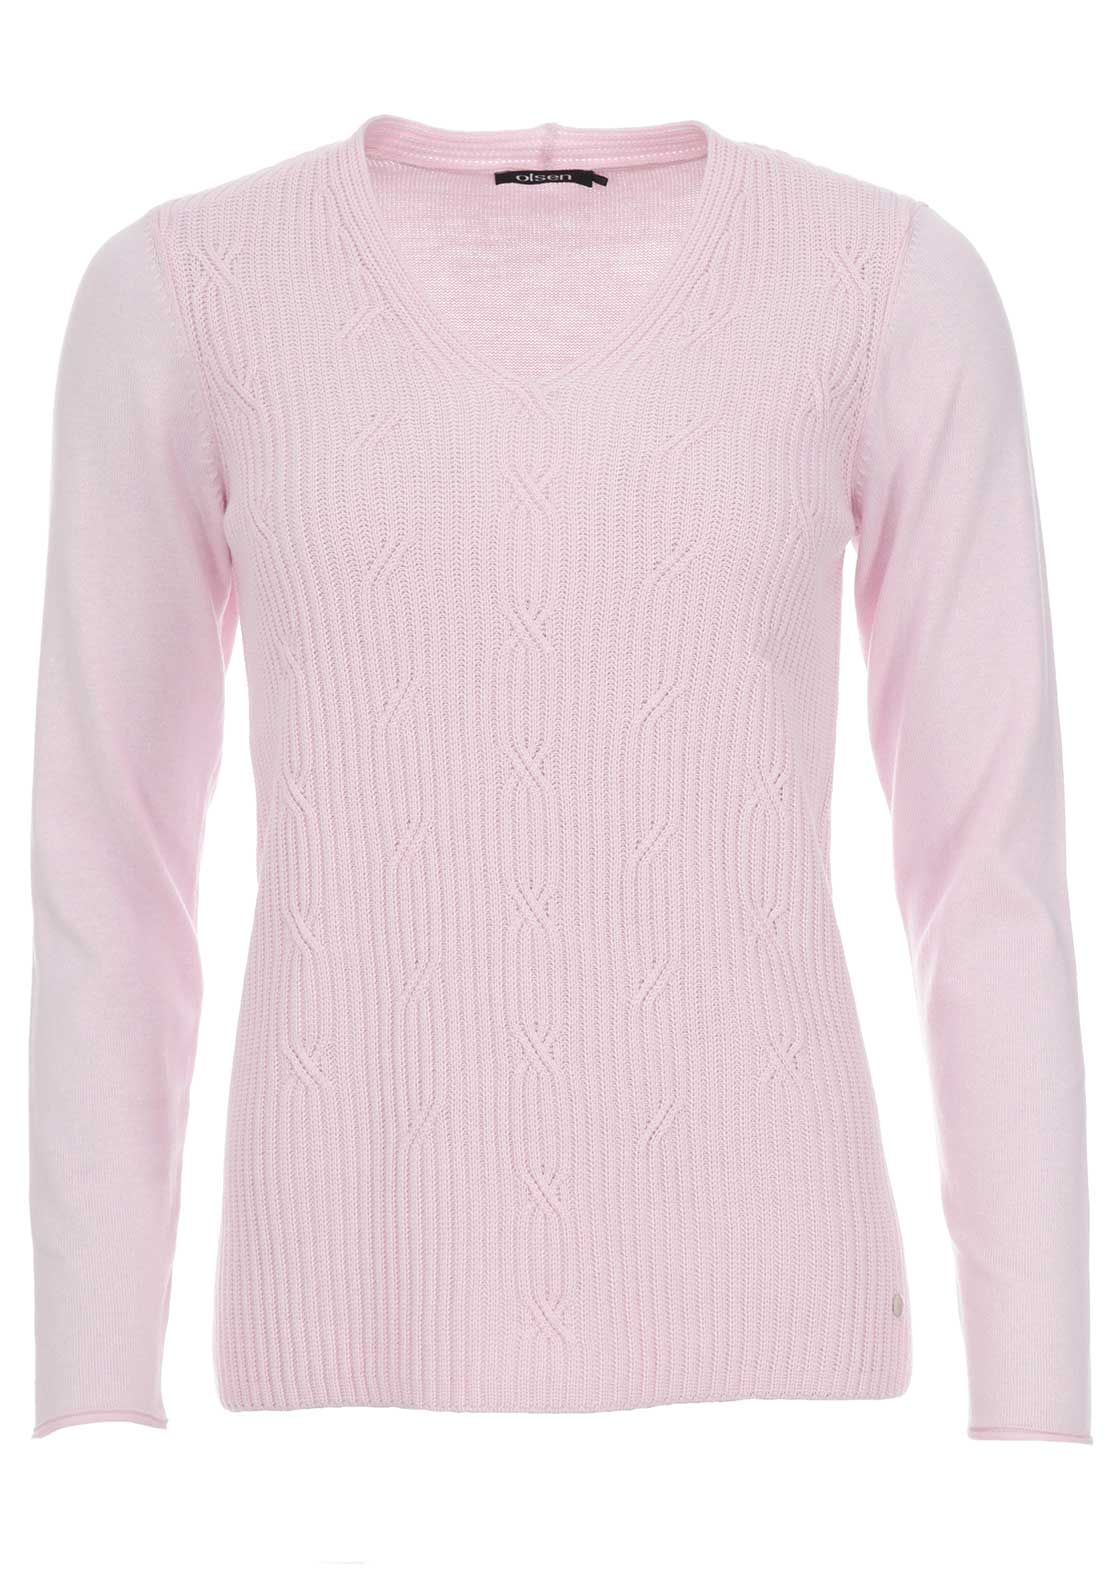 Olsen V-Neck Cable Knit Jumper, Pink